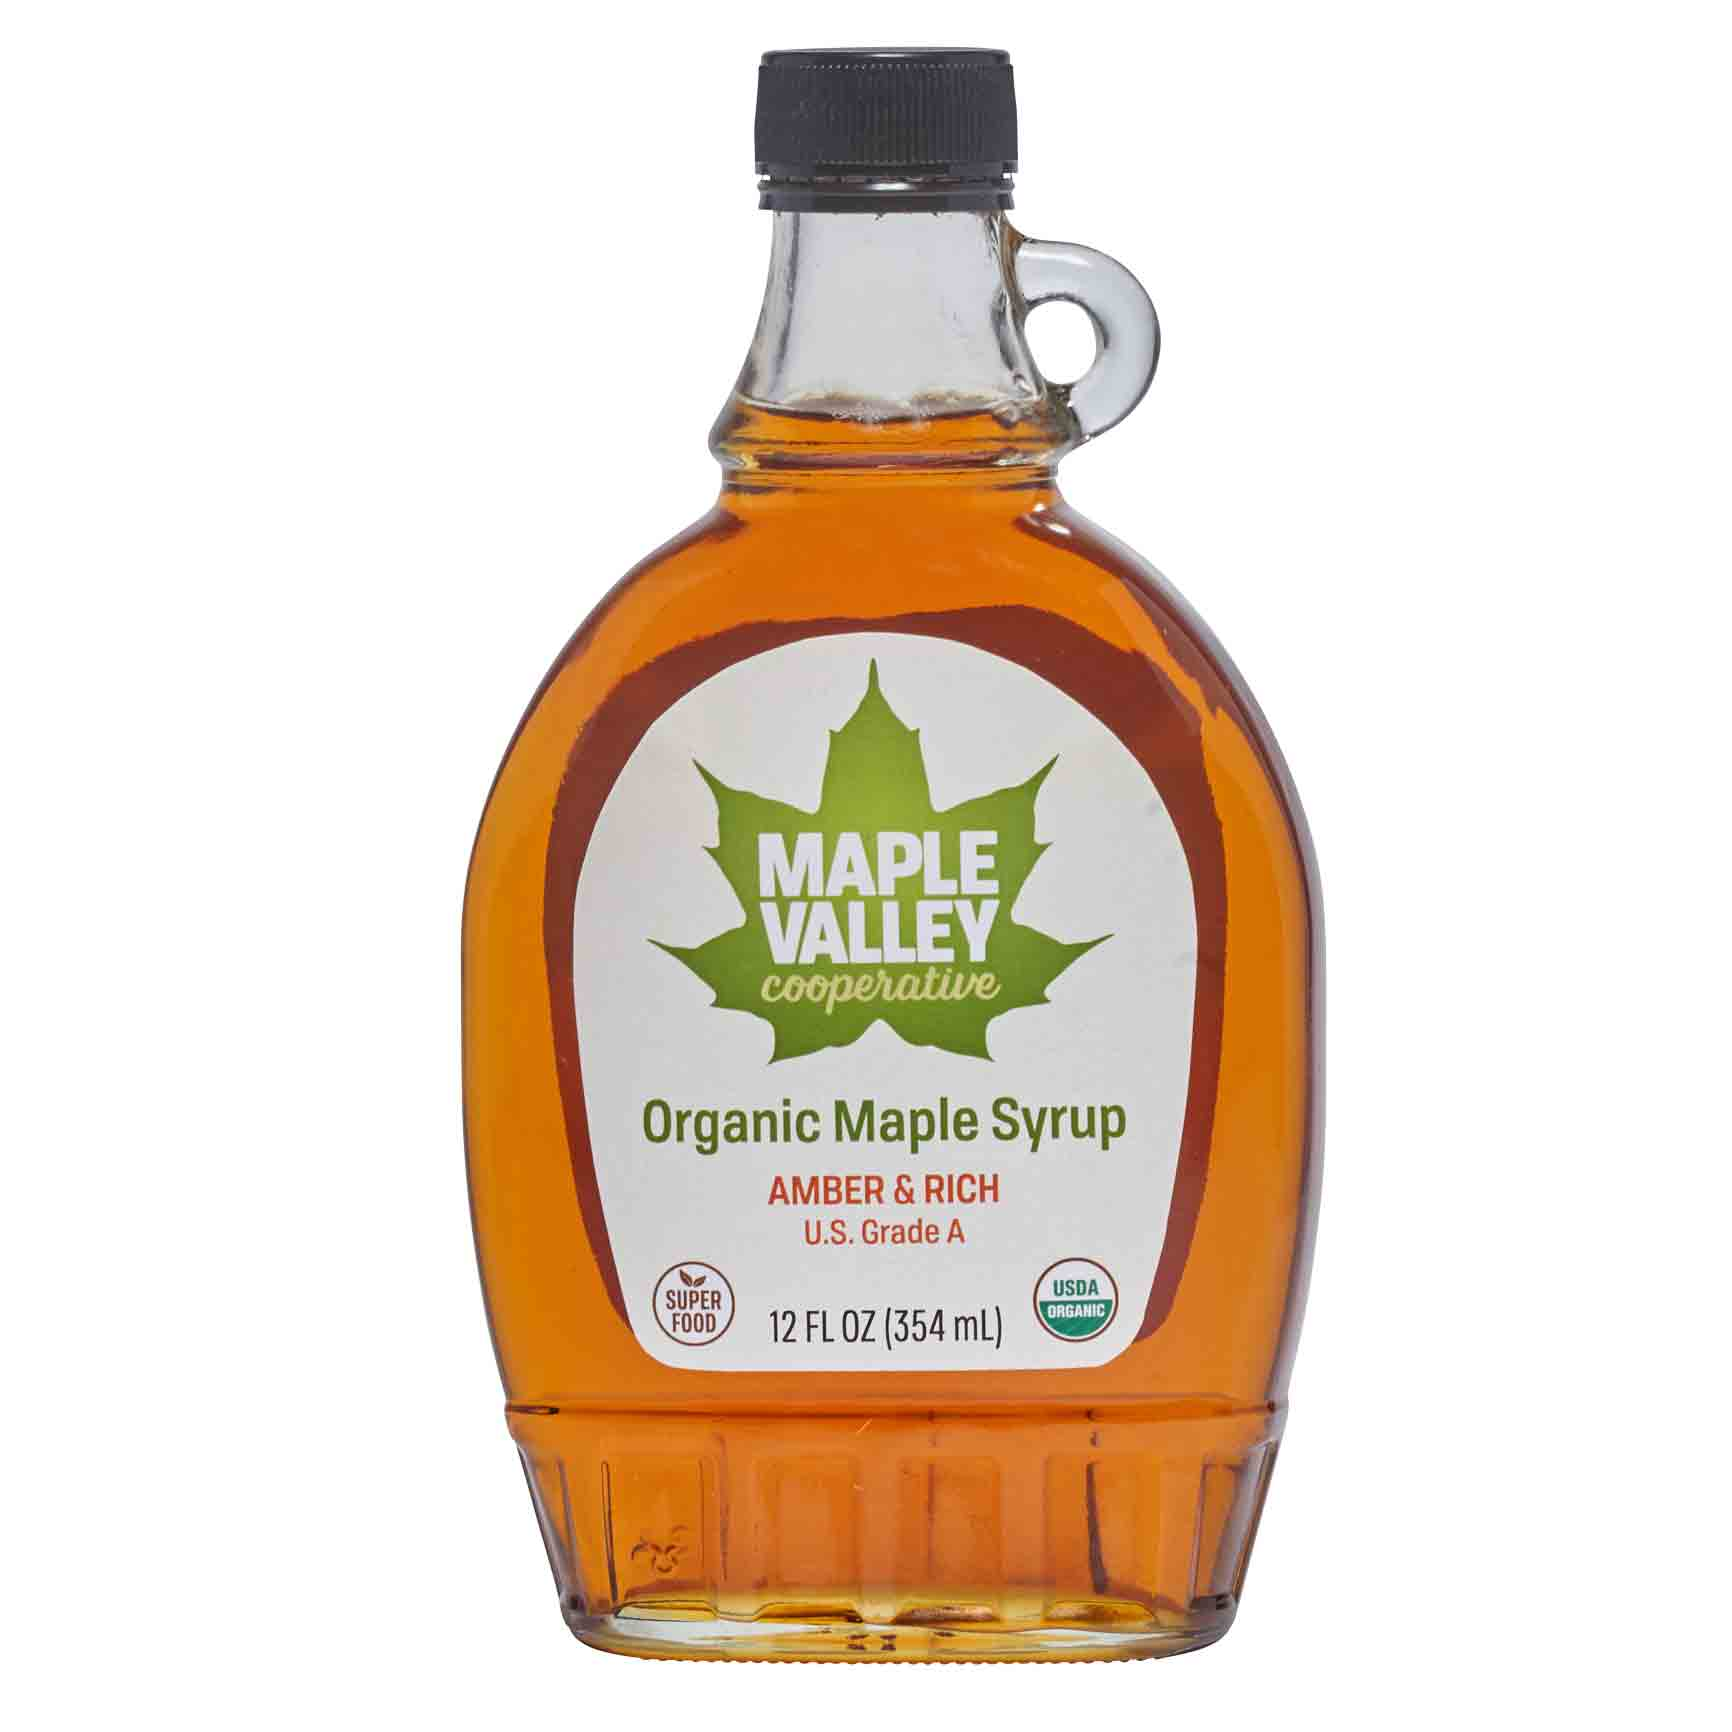 Five oz of Maple Valley Cooperative organic maple sugar